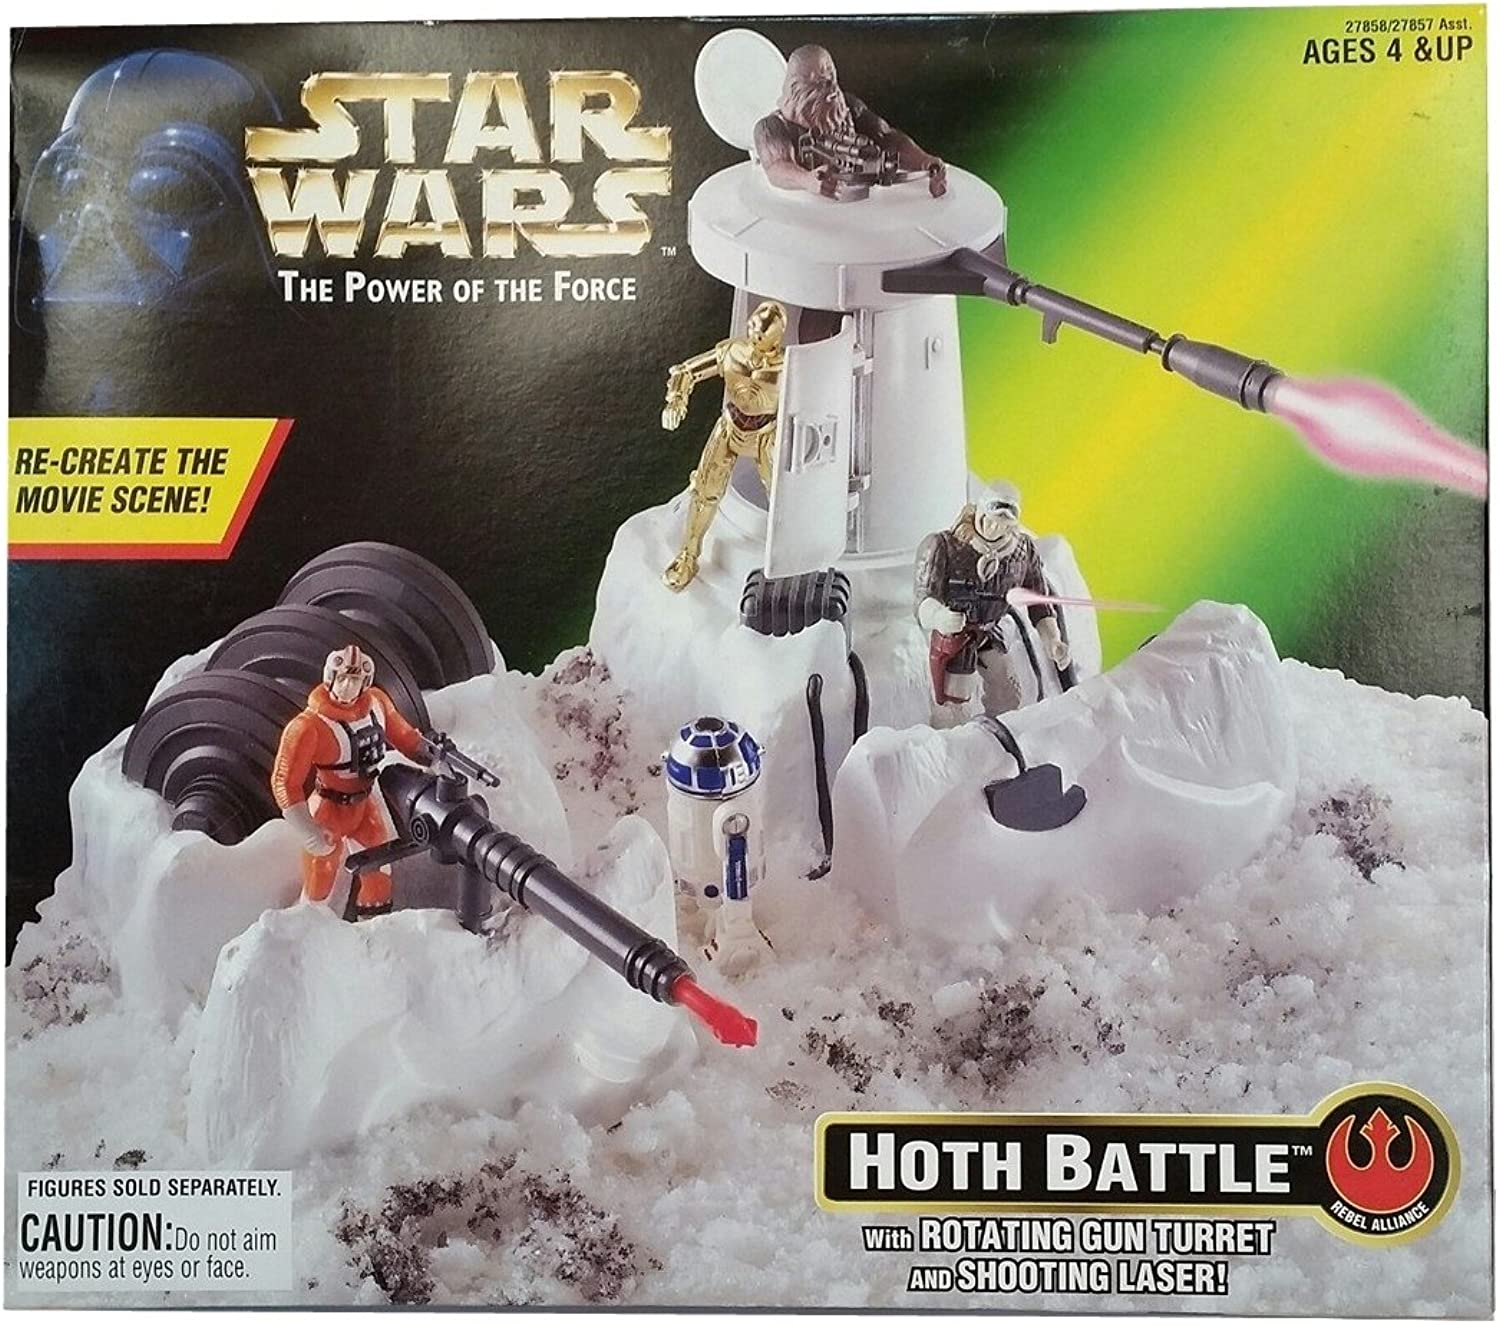 Star Wars Hoth Battle The Power of The Force  Rebel Alliance